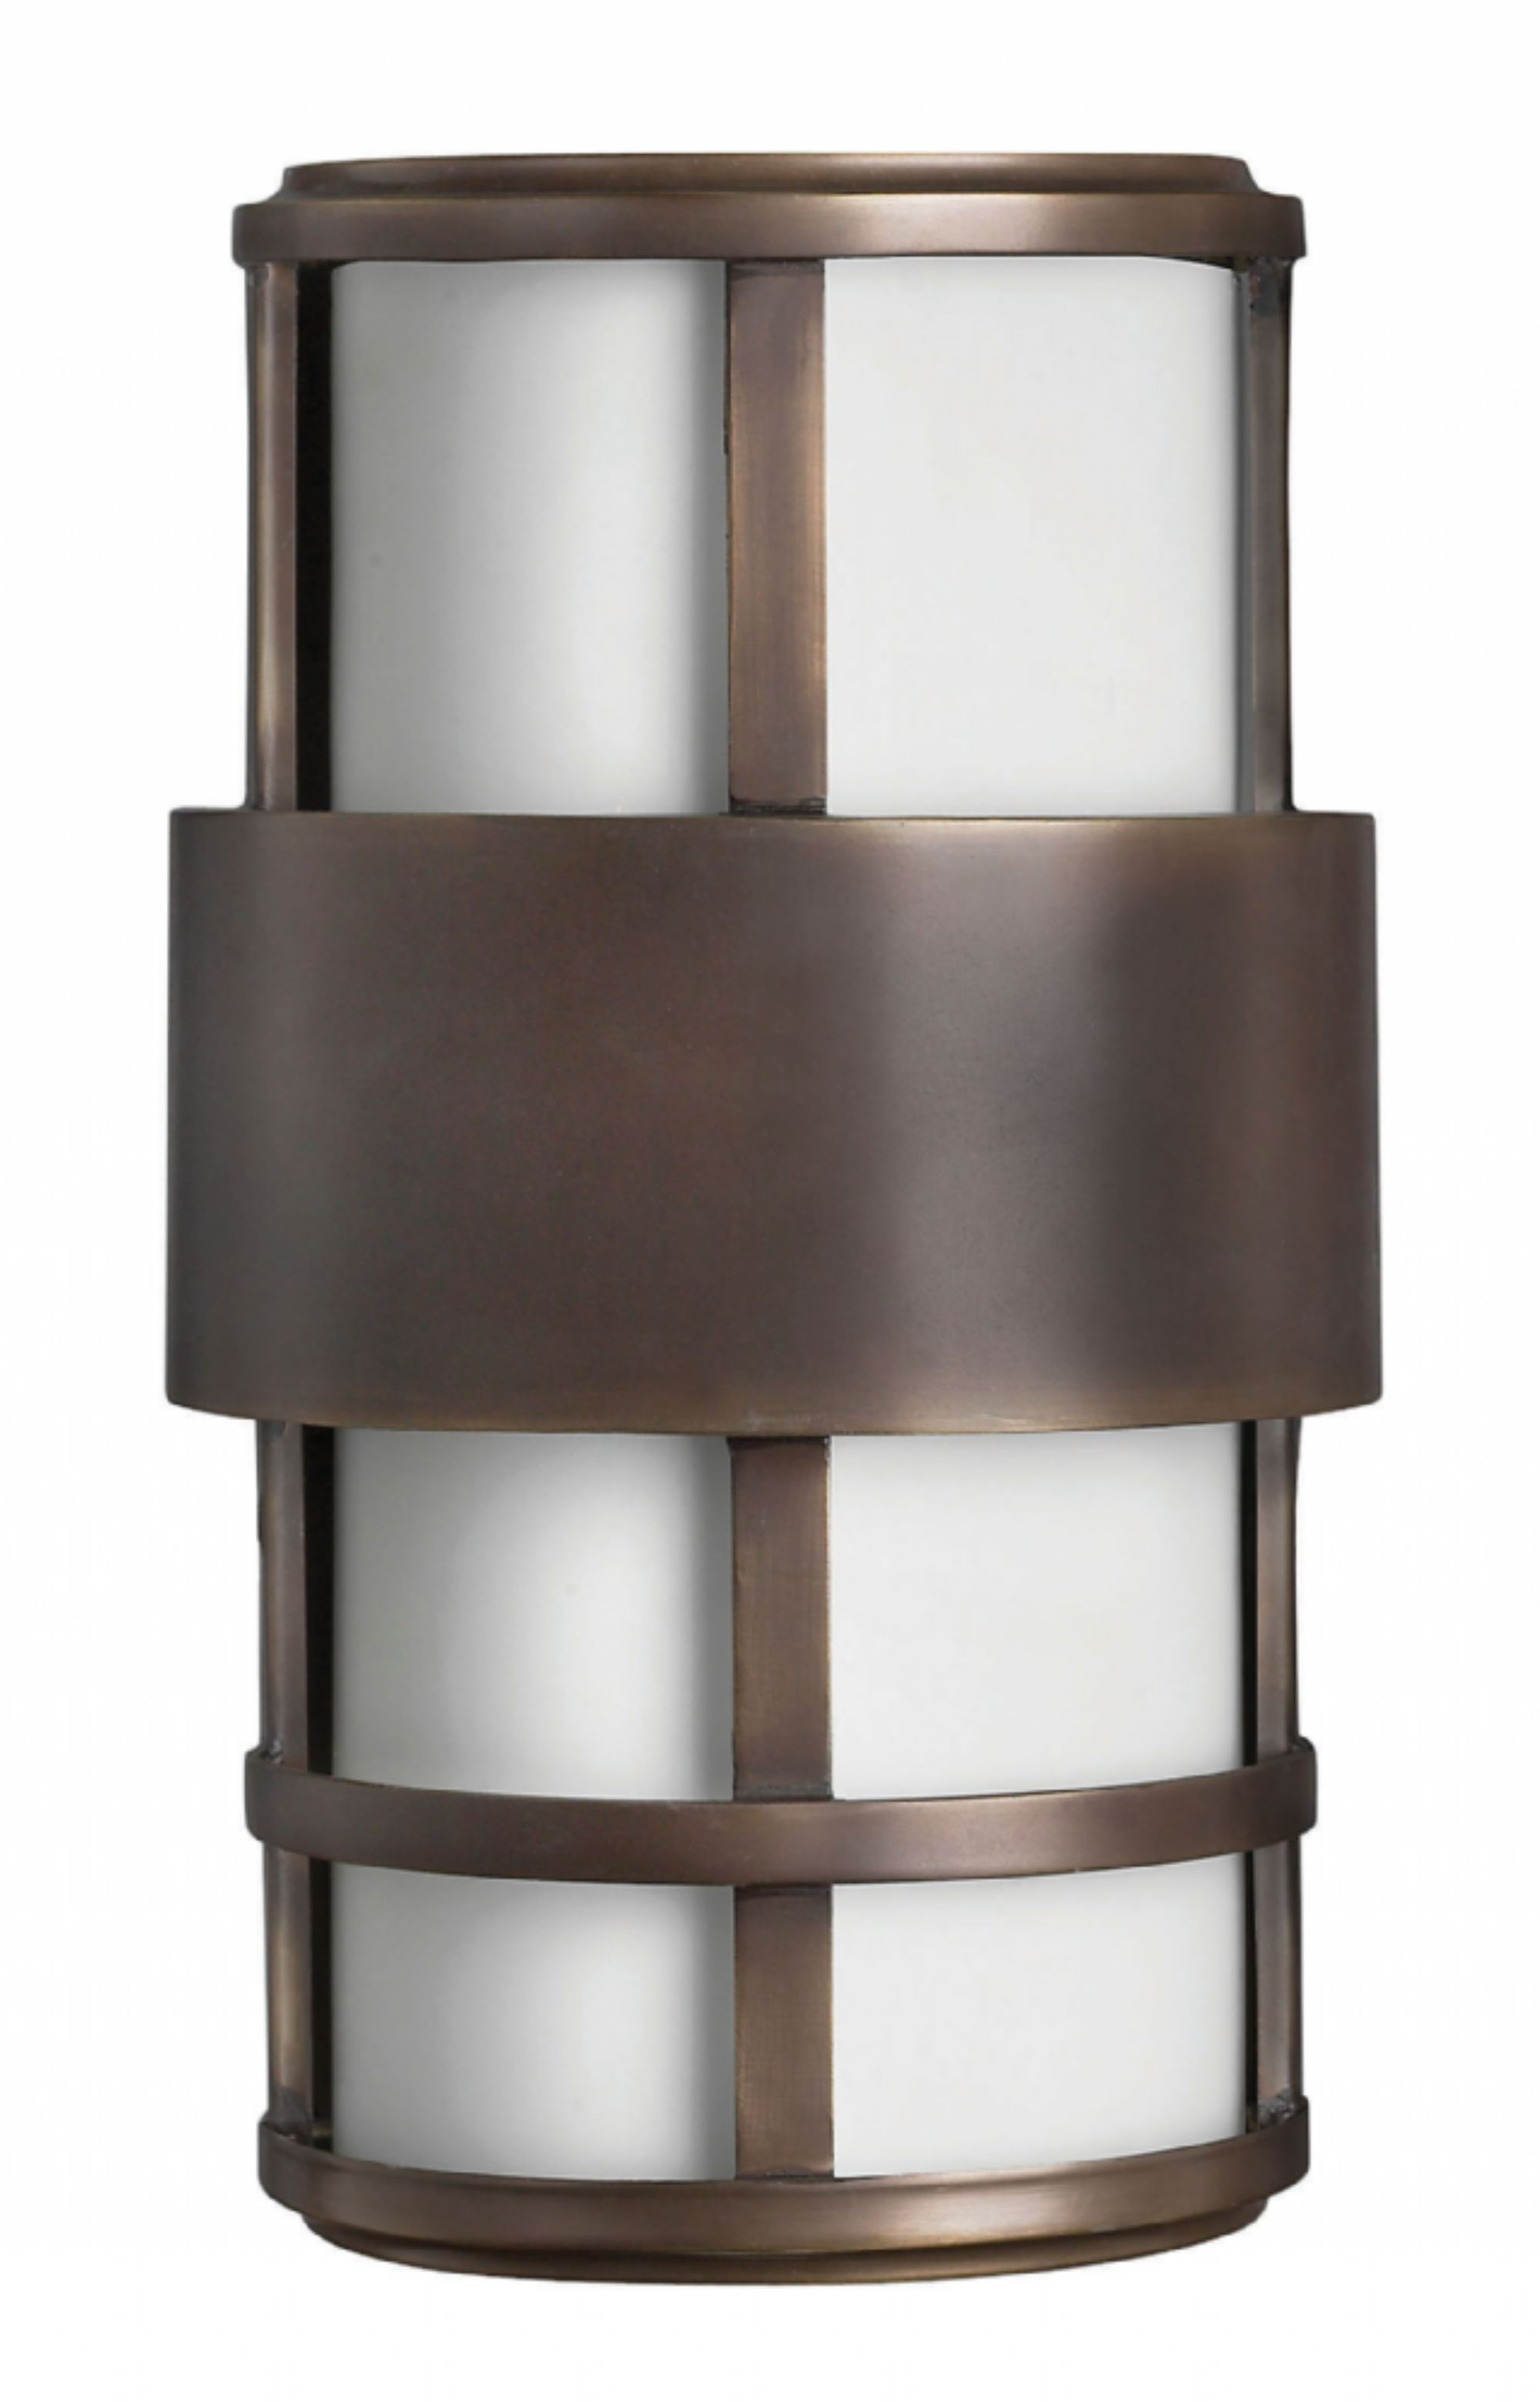 Metro Bronze Saturn > Exterior Wall Mount with regard to Wall Mounted Outdoor Lanterns (Image 9 of 20)